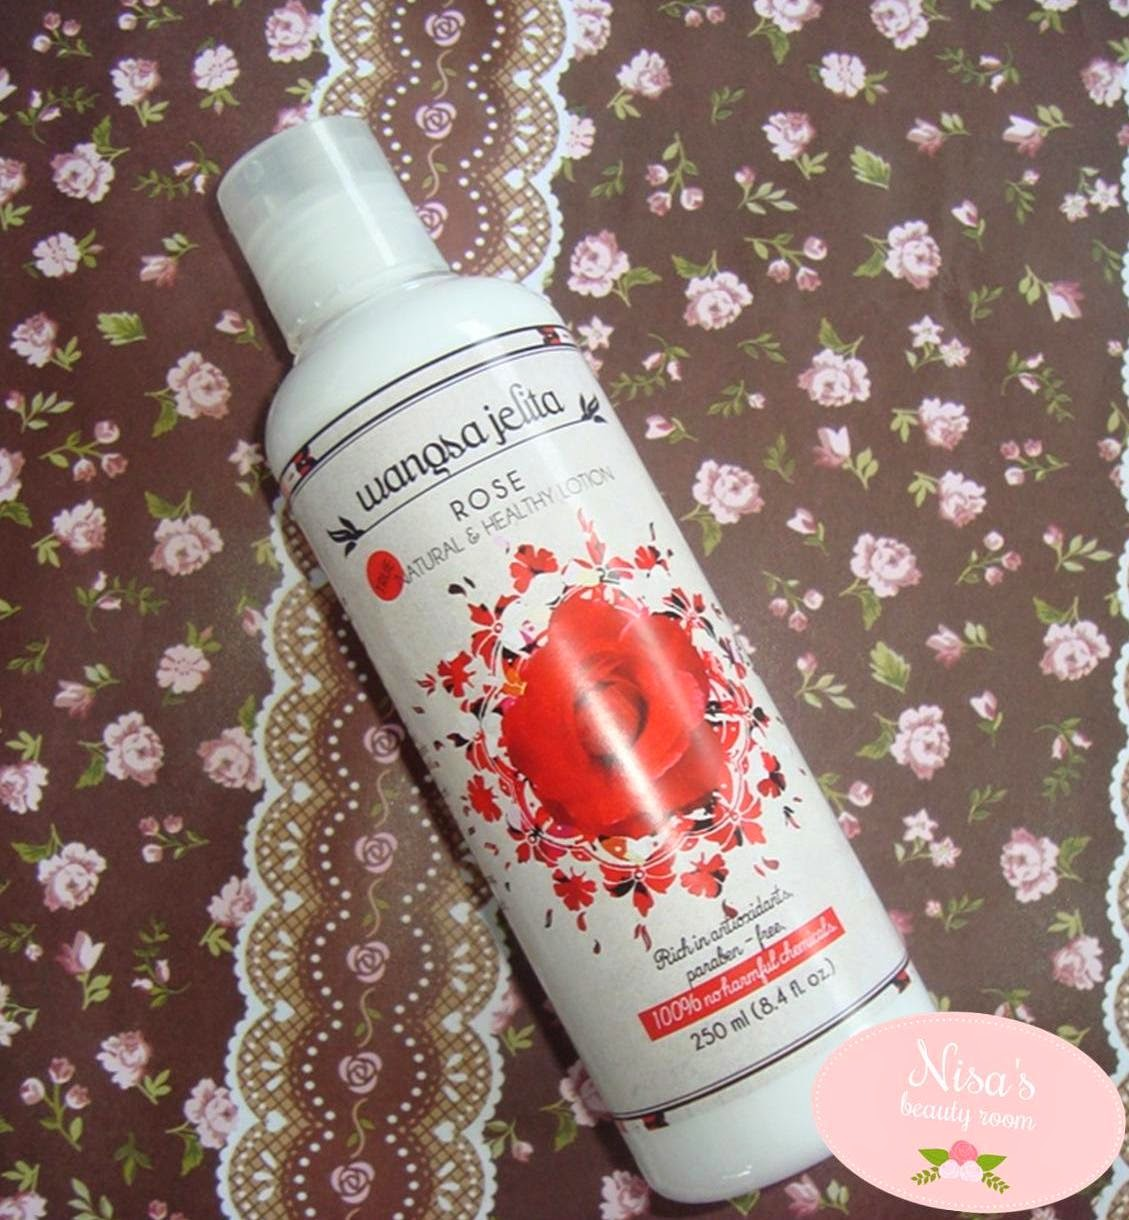 Wangsa Jelita Rose True Natural and Healthy Lotion